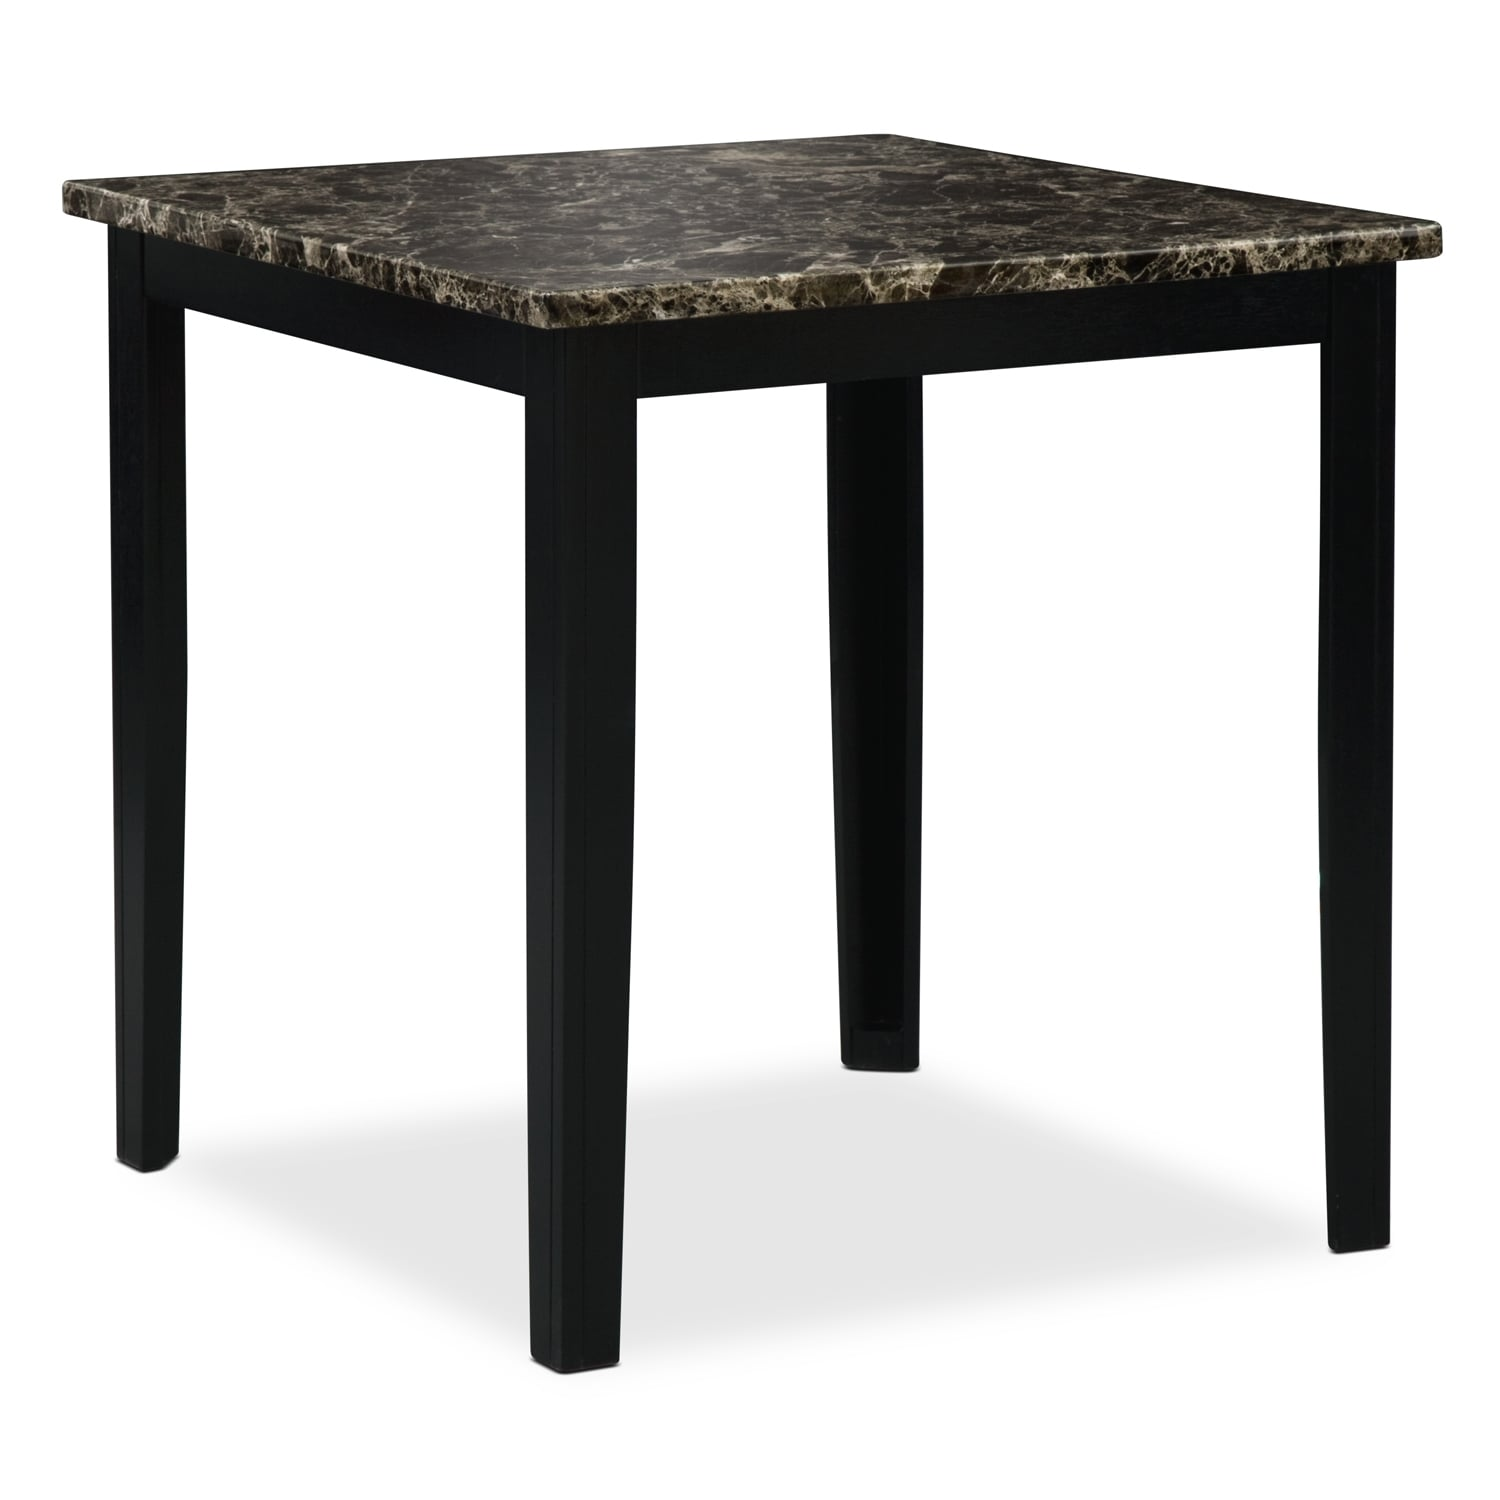 Shadow counter height dining table black value city for Black dining table